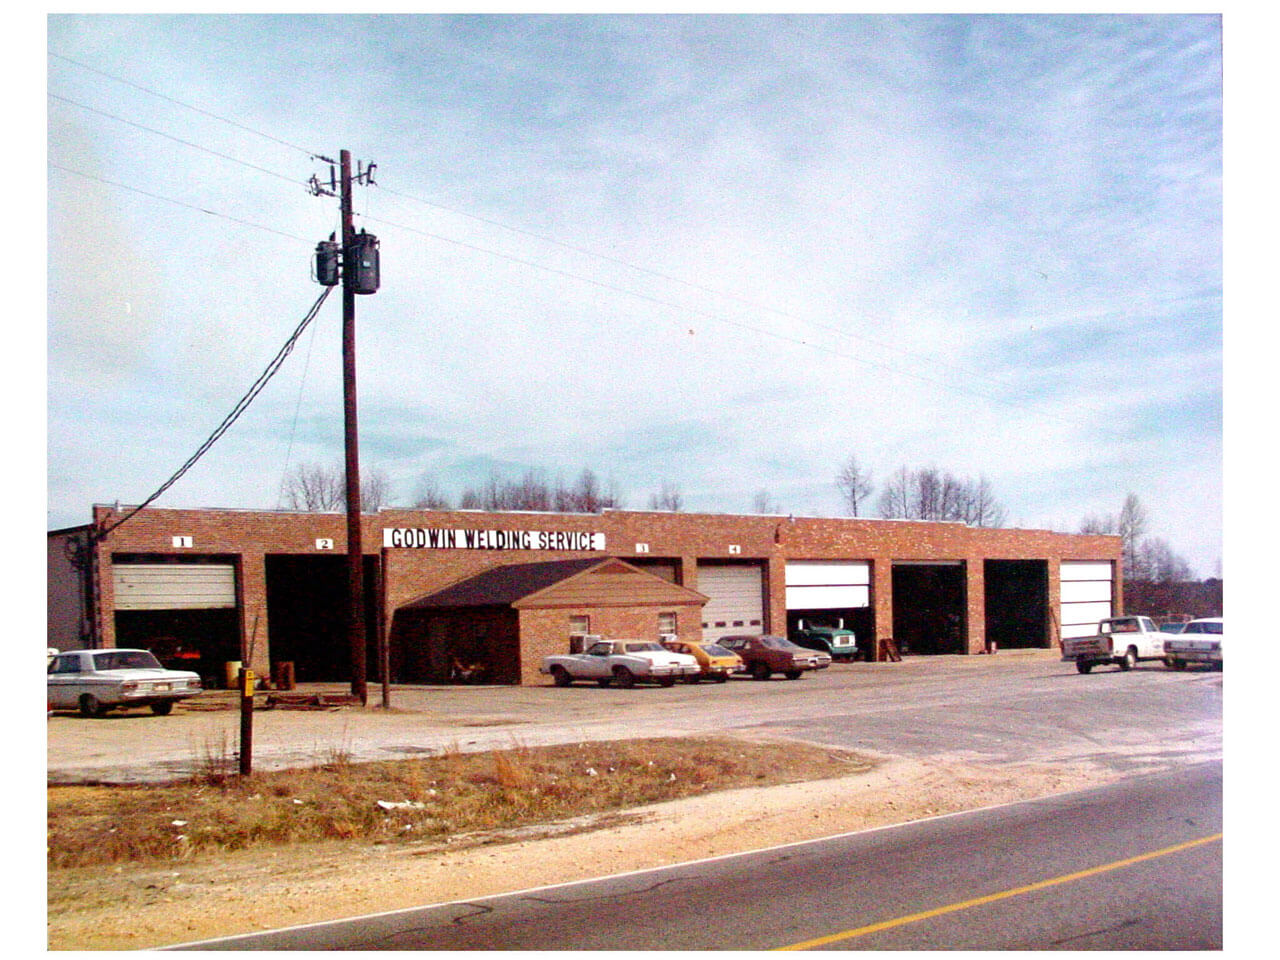 A photo of Godwin Welding Service